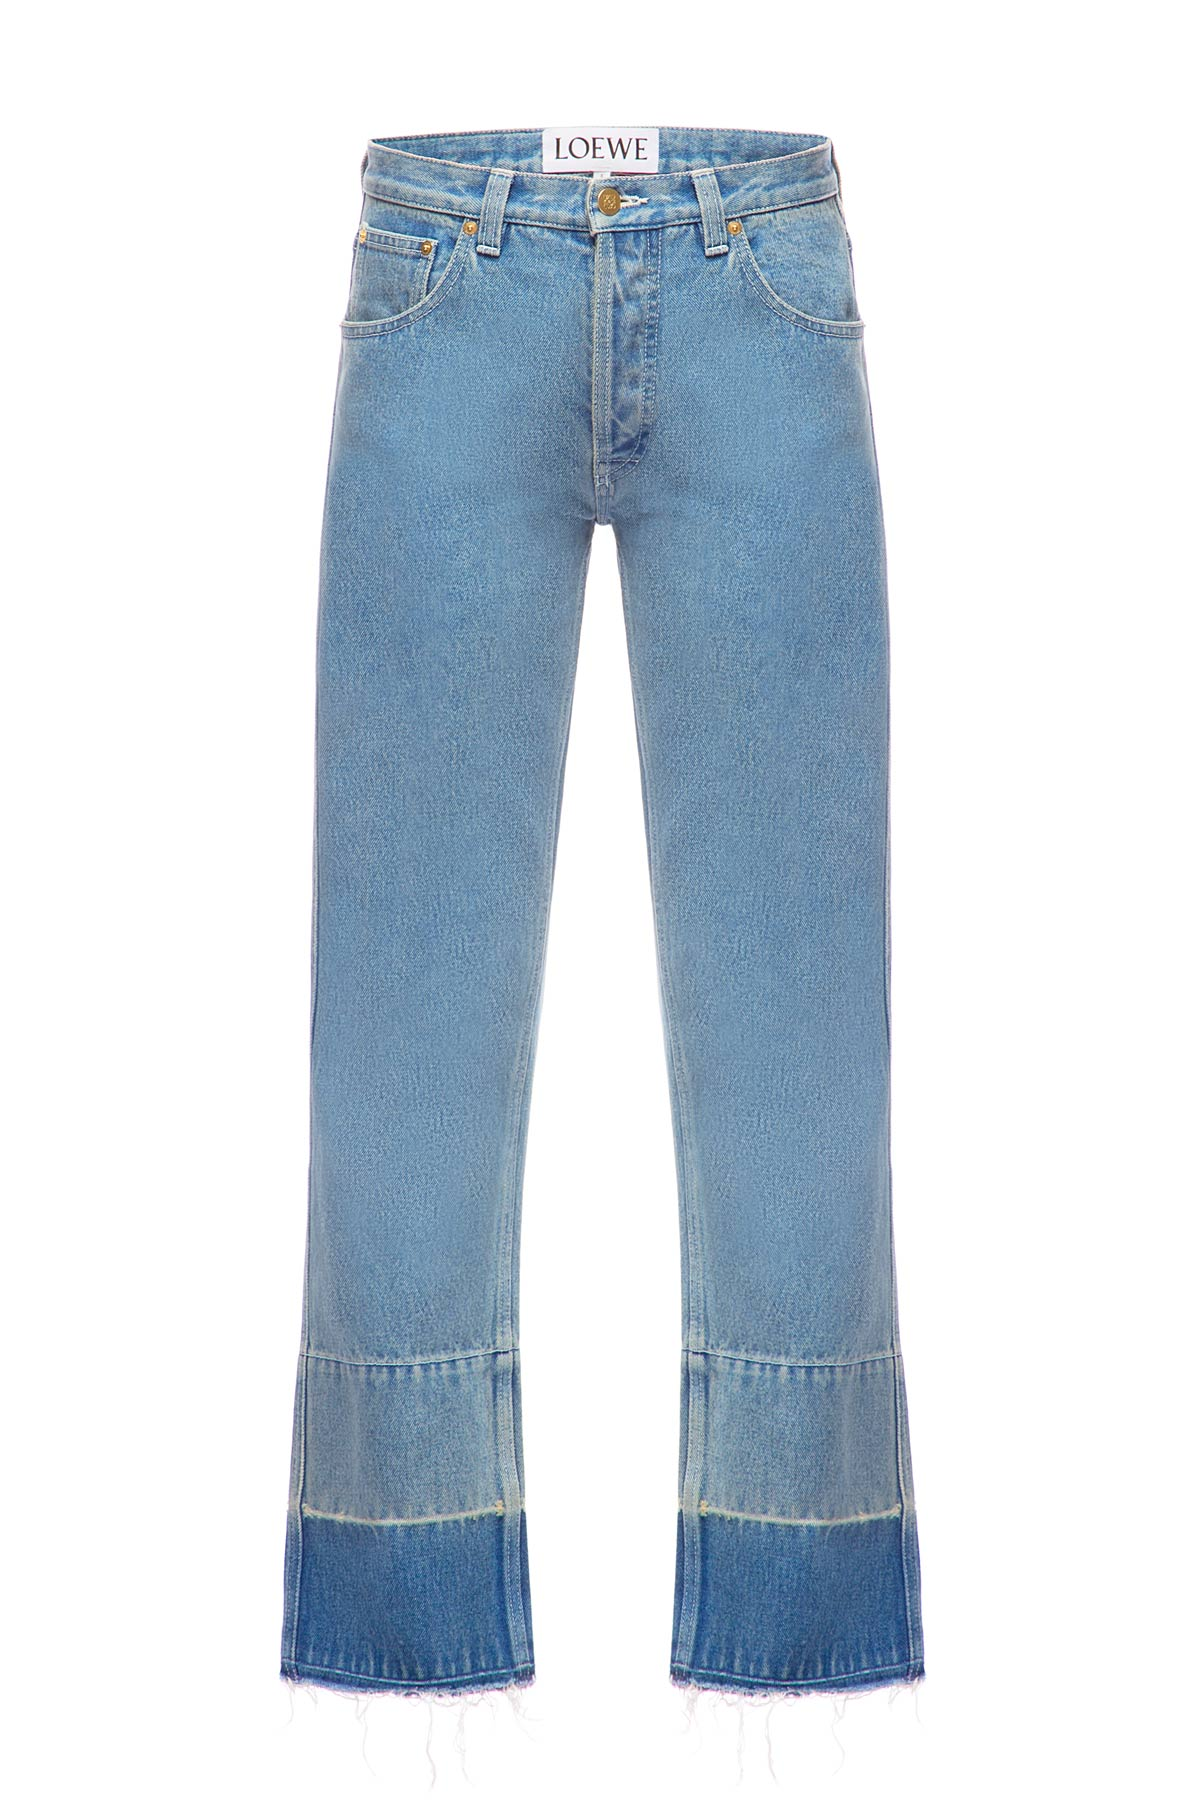 LOEWE 5 Pkt Jeans Faces Embroidery Indigo front